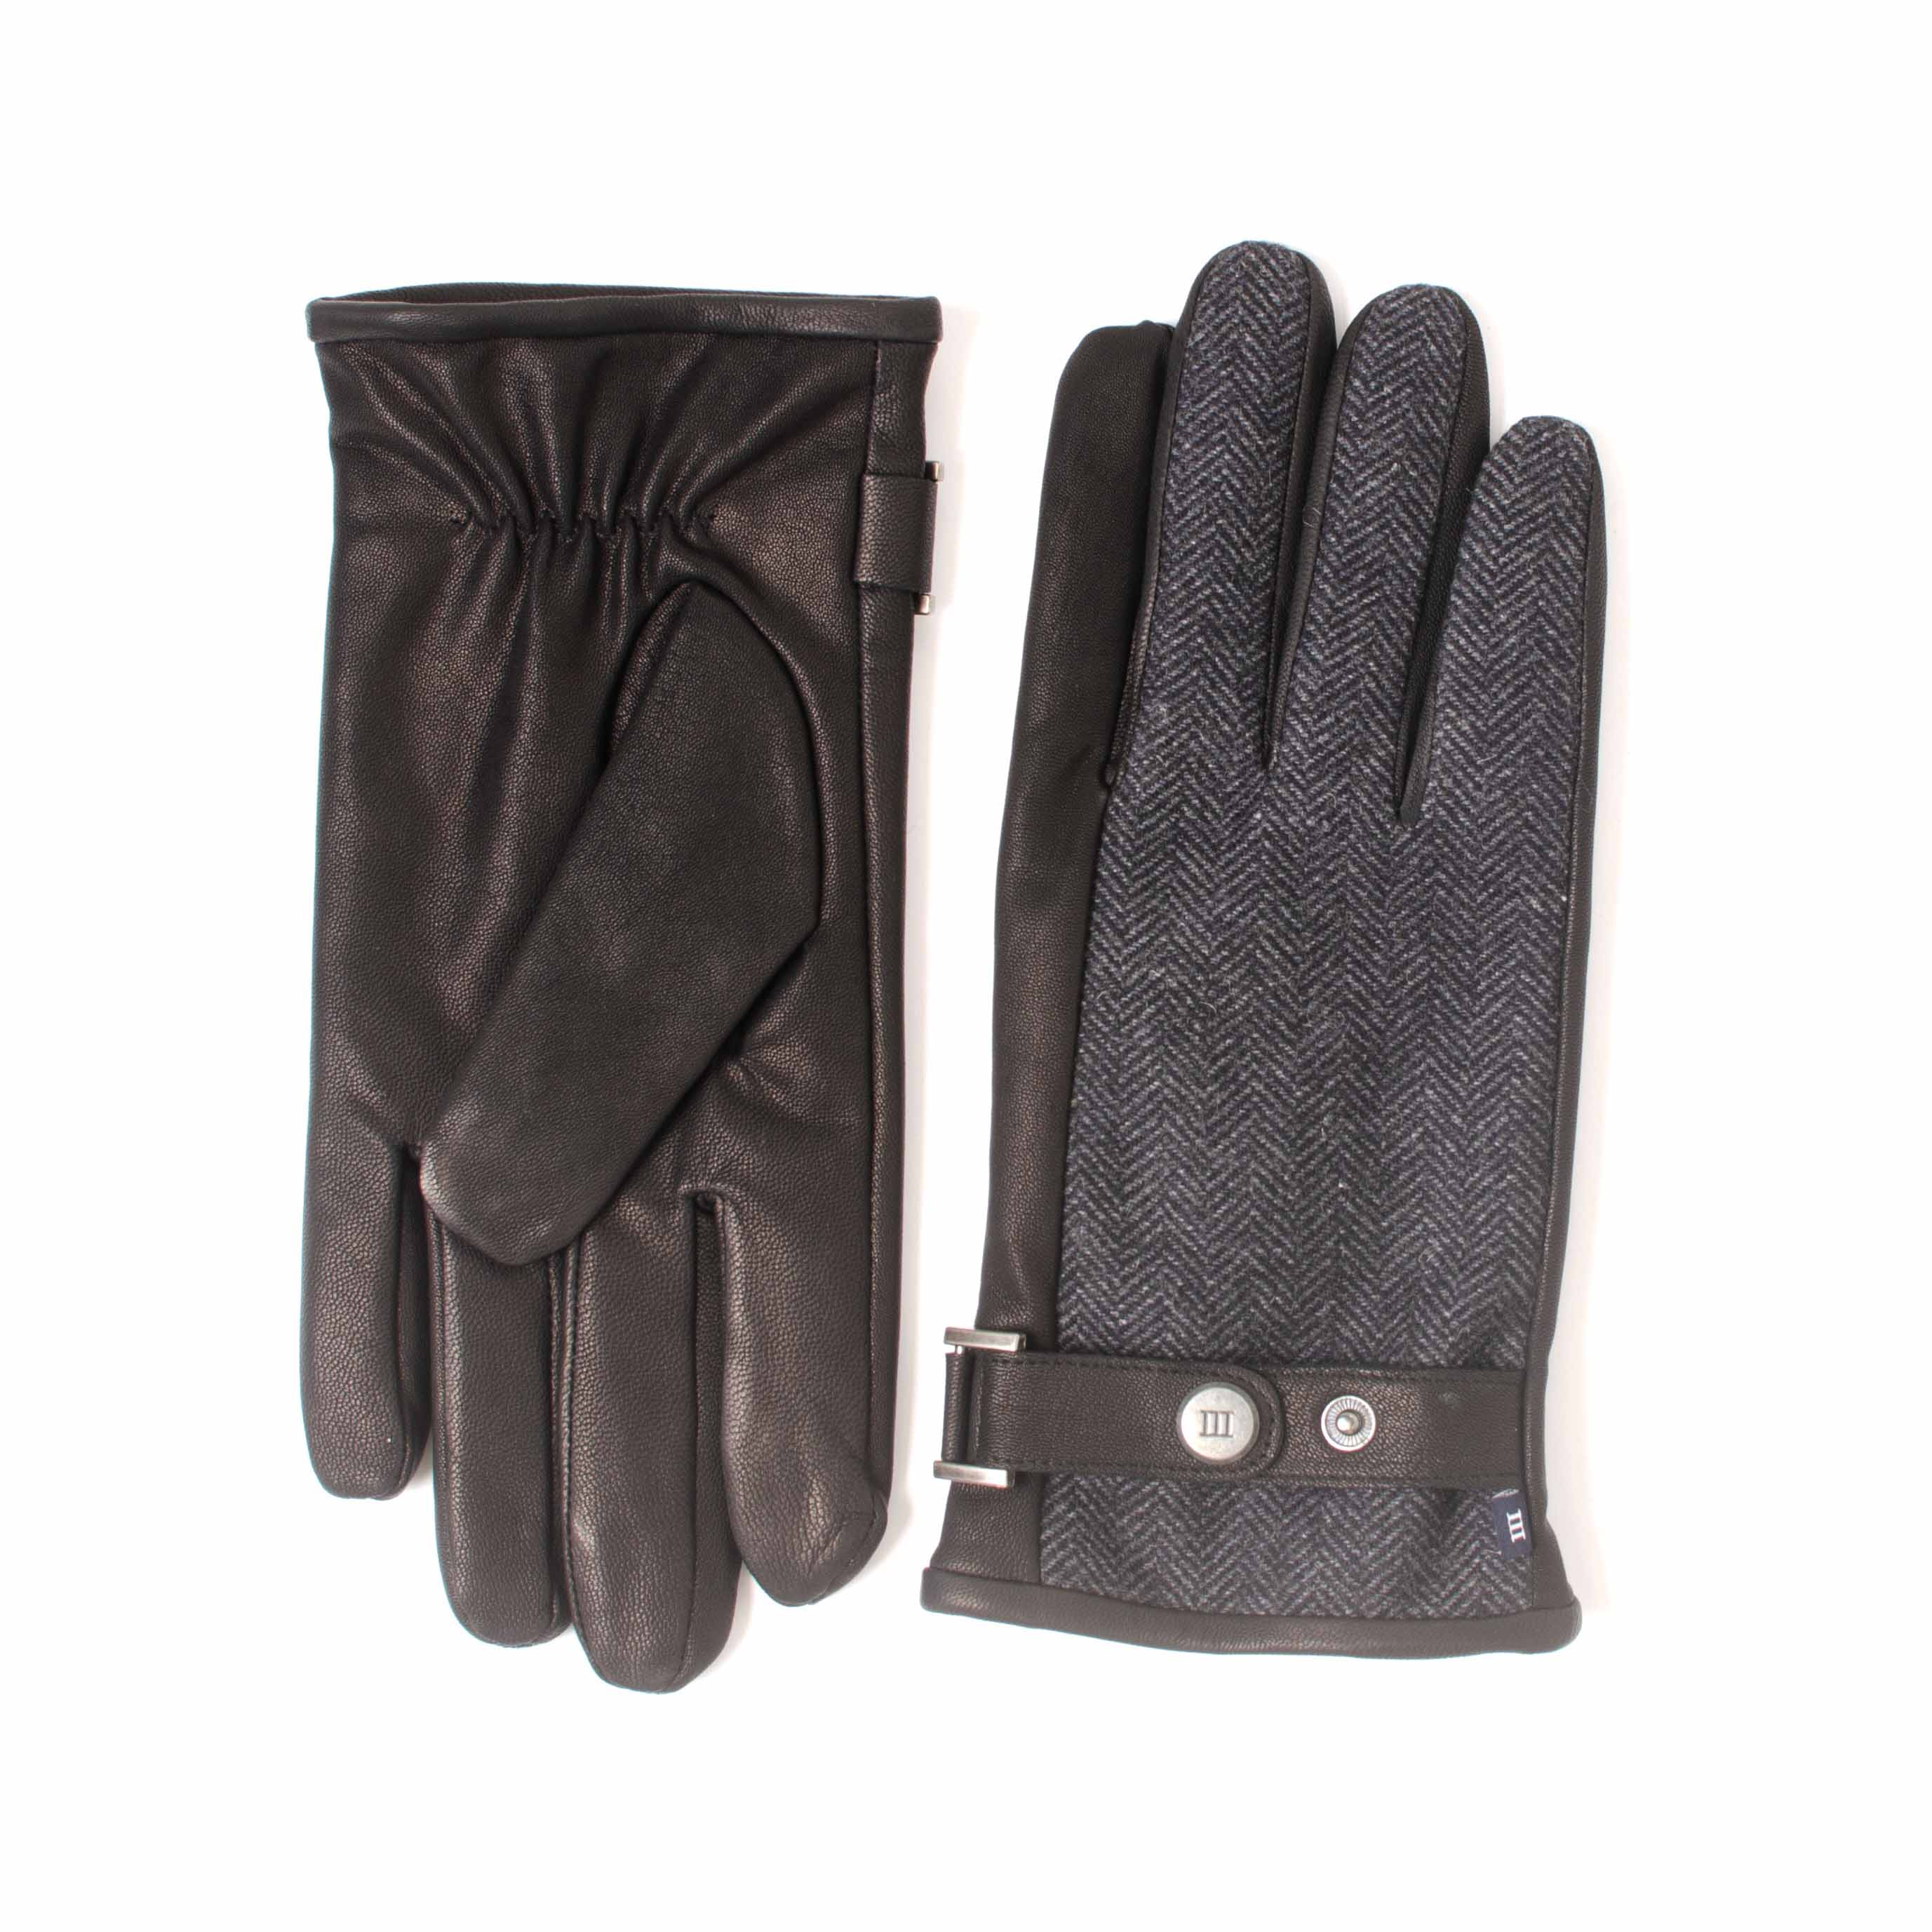 EDDIS | Black gloves made of leather and fabric with a herringbone pattern and button closure